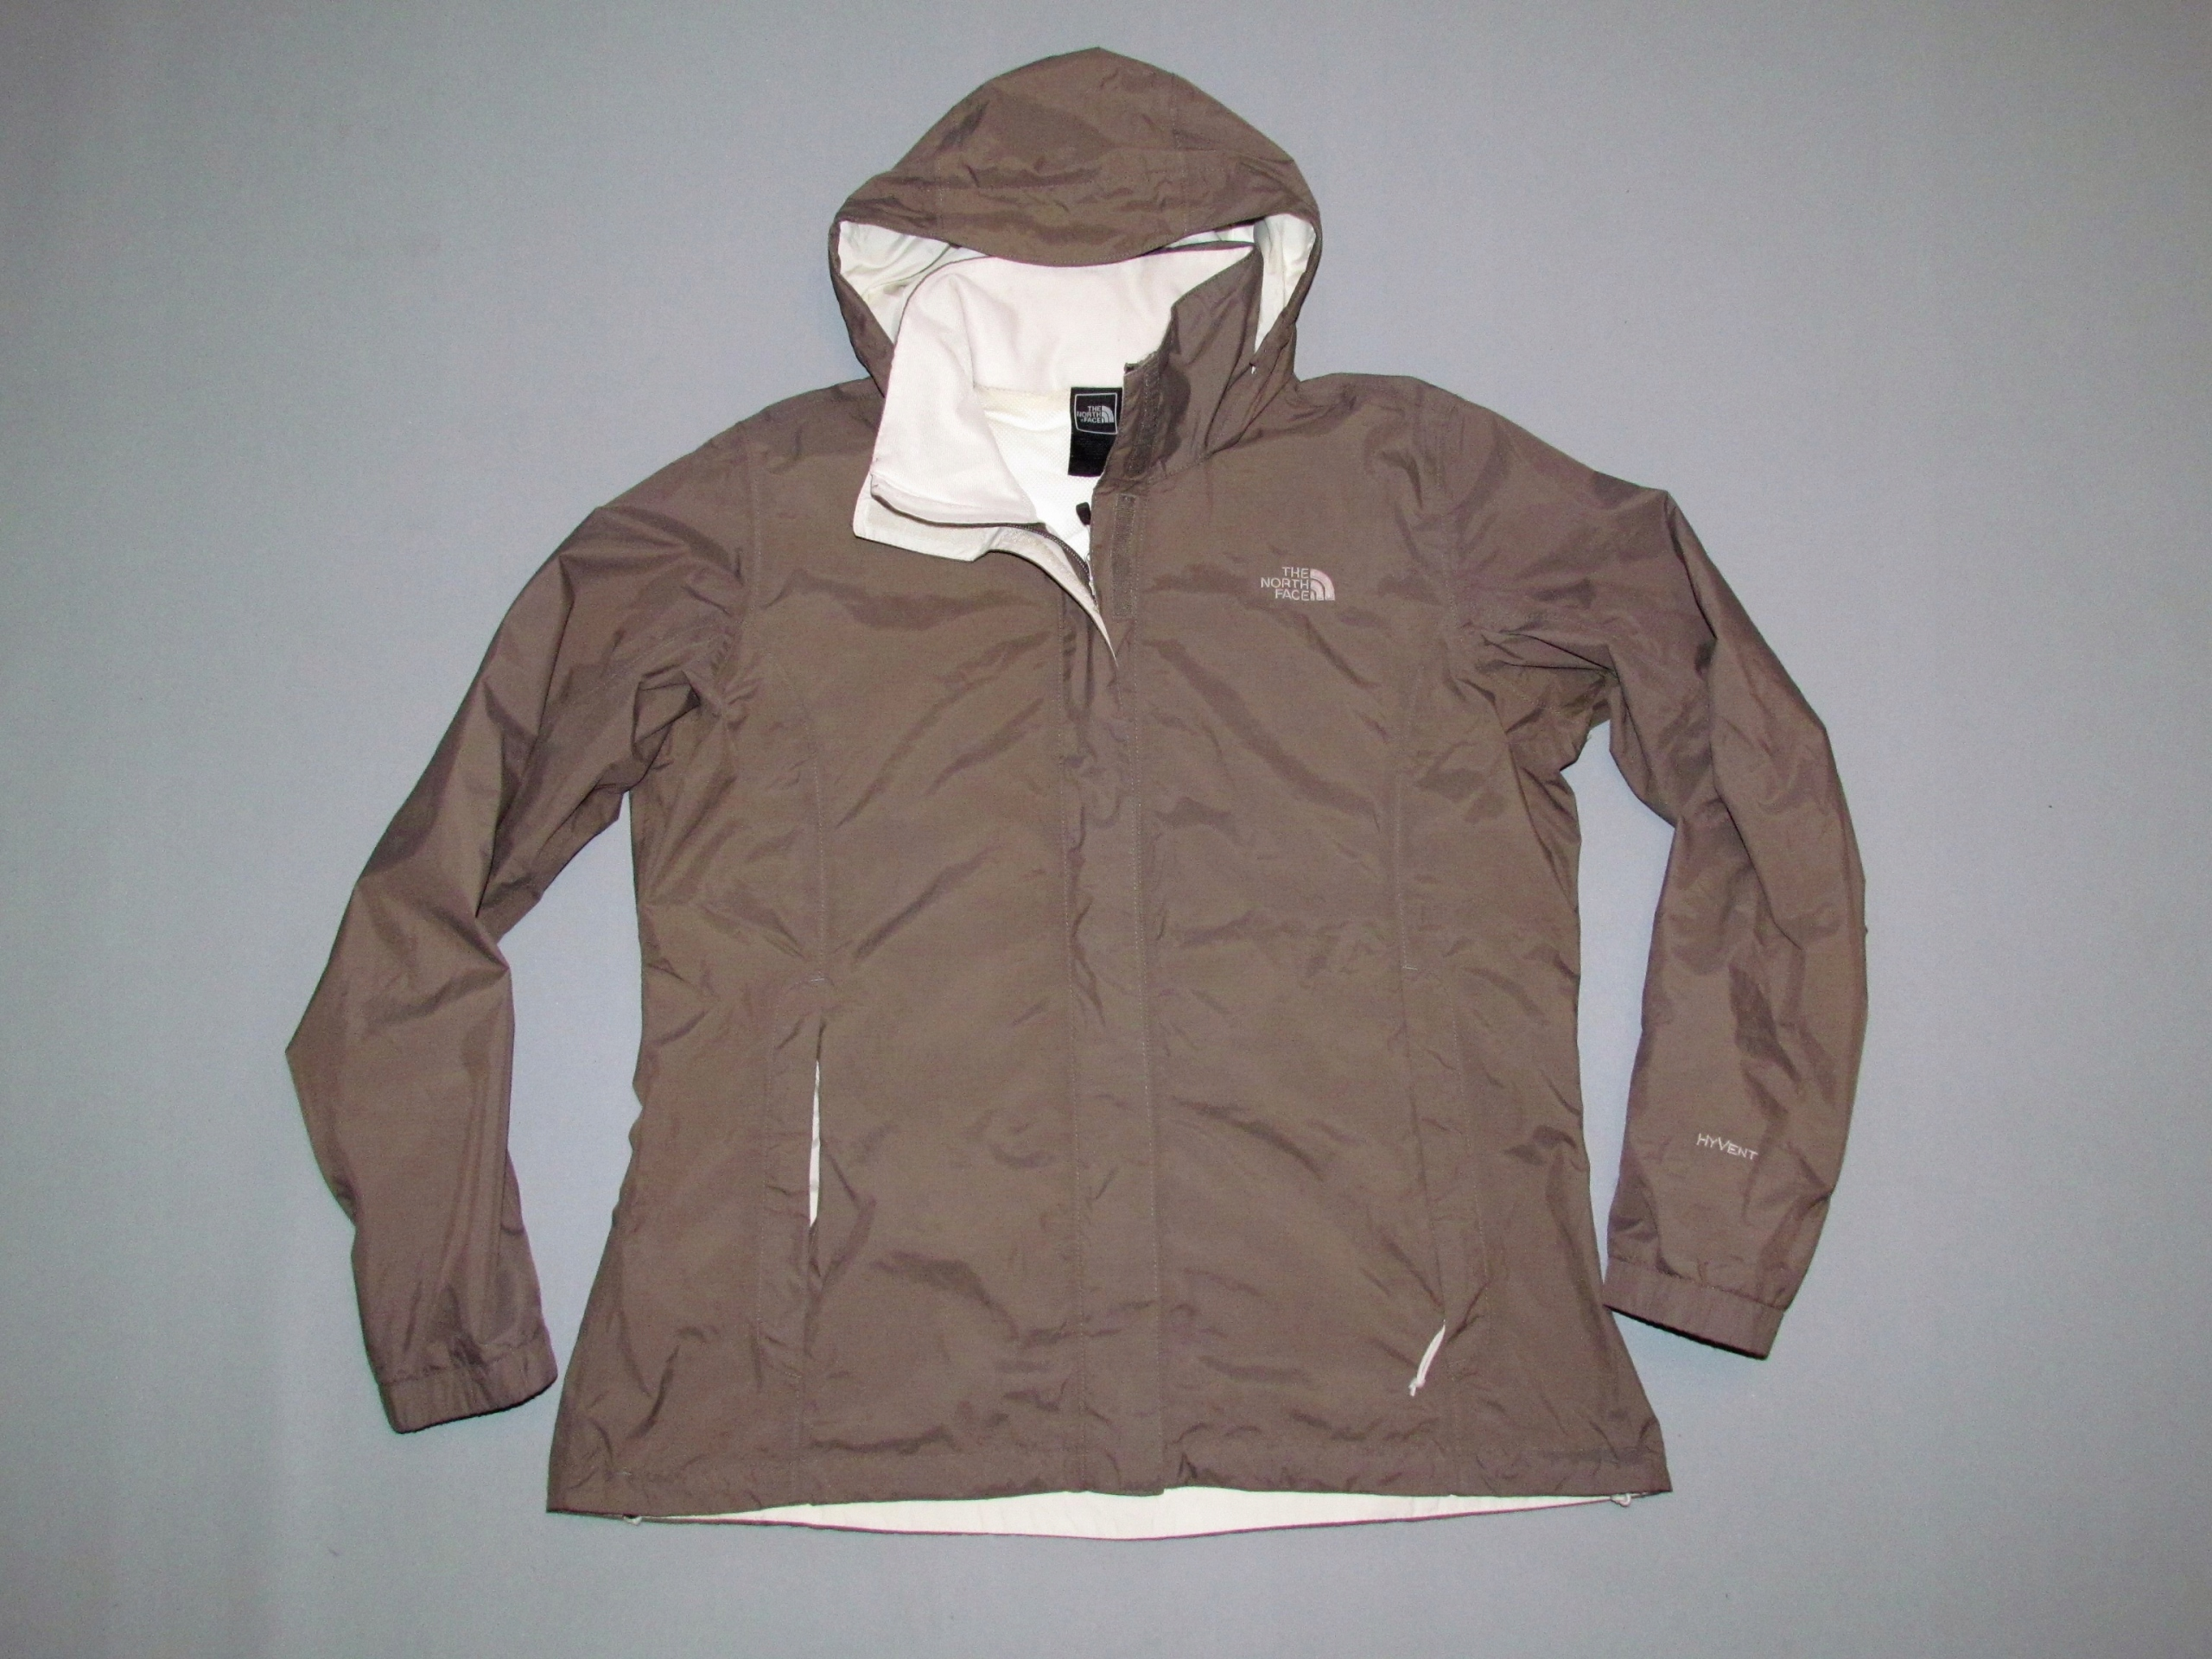 Kurtka The North Face Hyvent roz.XL